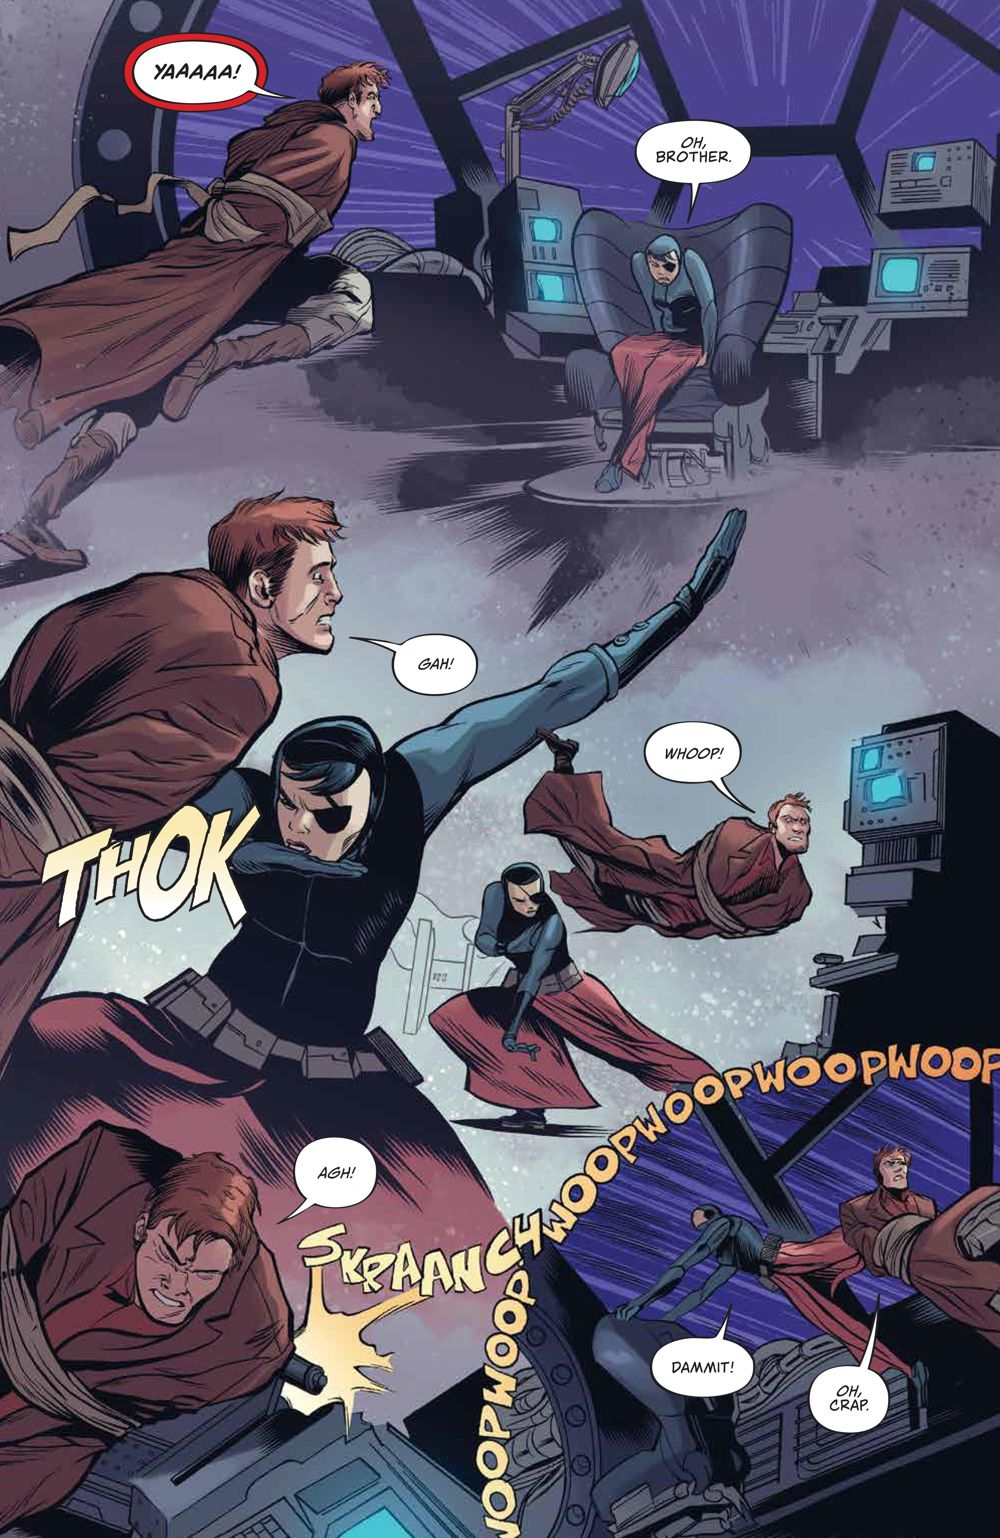 Firefly_UnificationWar_v2_SC_PRESS_20 ComicList Previews: FIREFLY THE UNIFICATION WAR VOLUME 2 TP